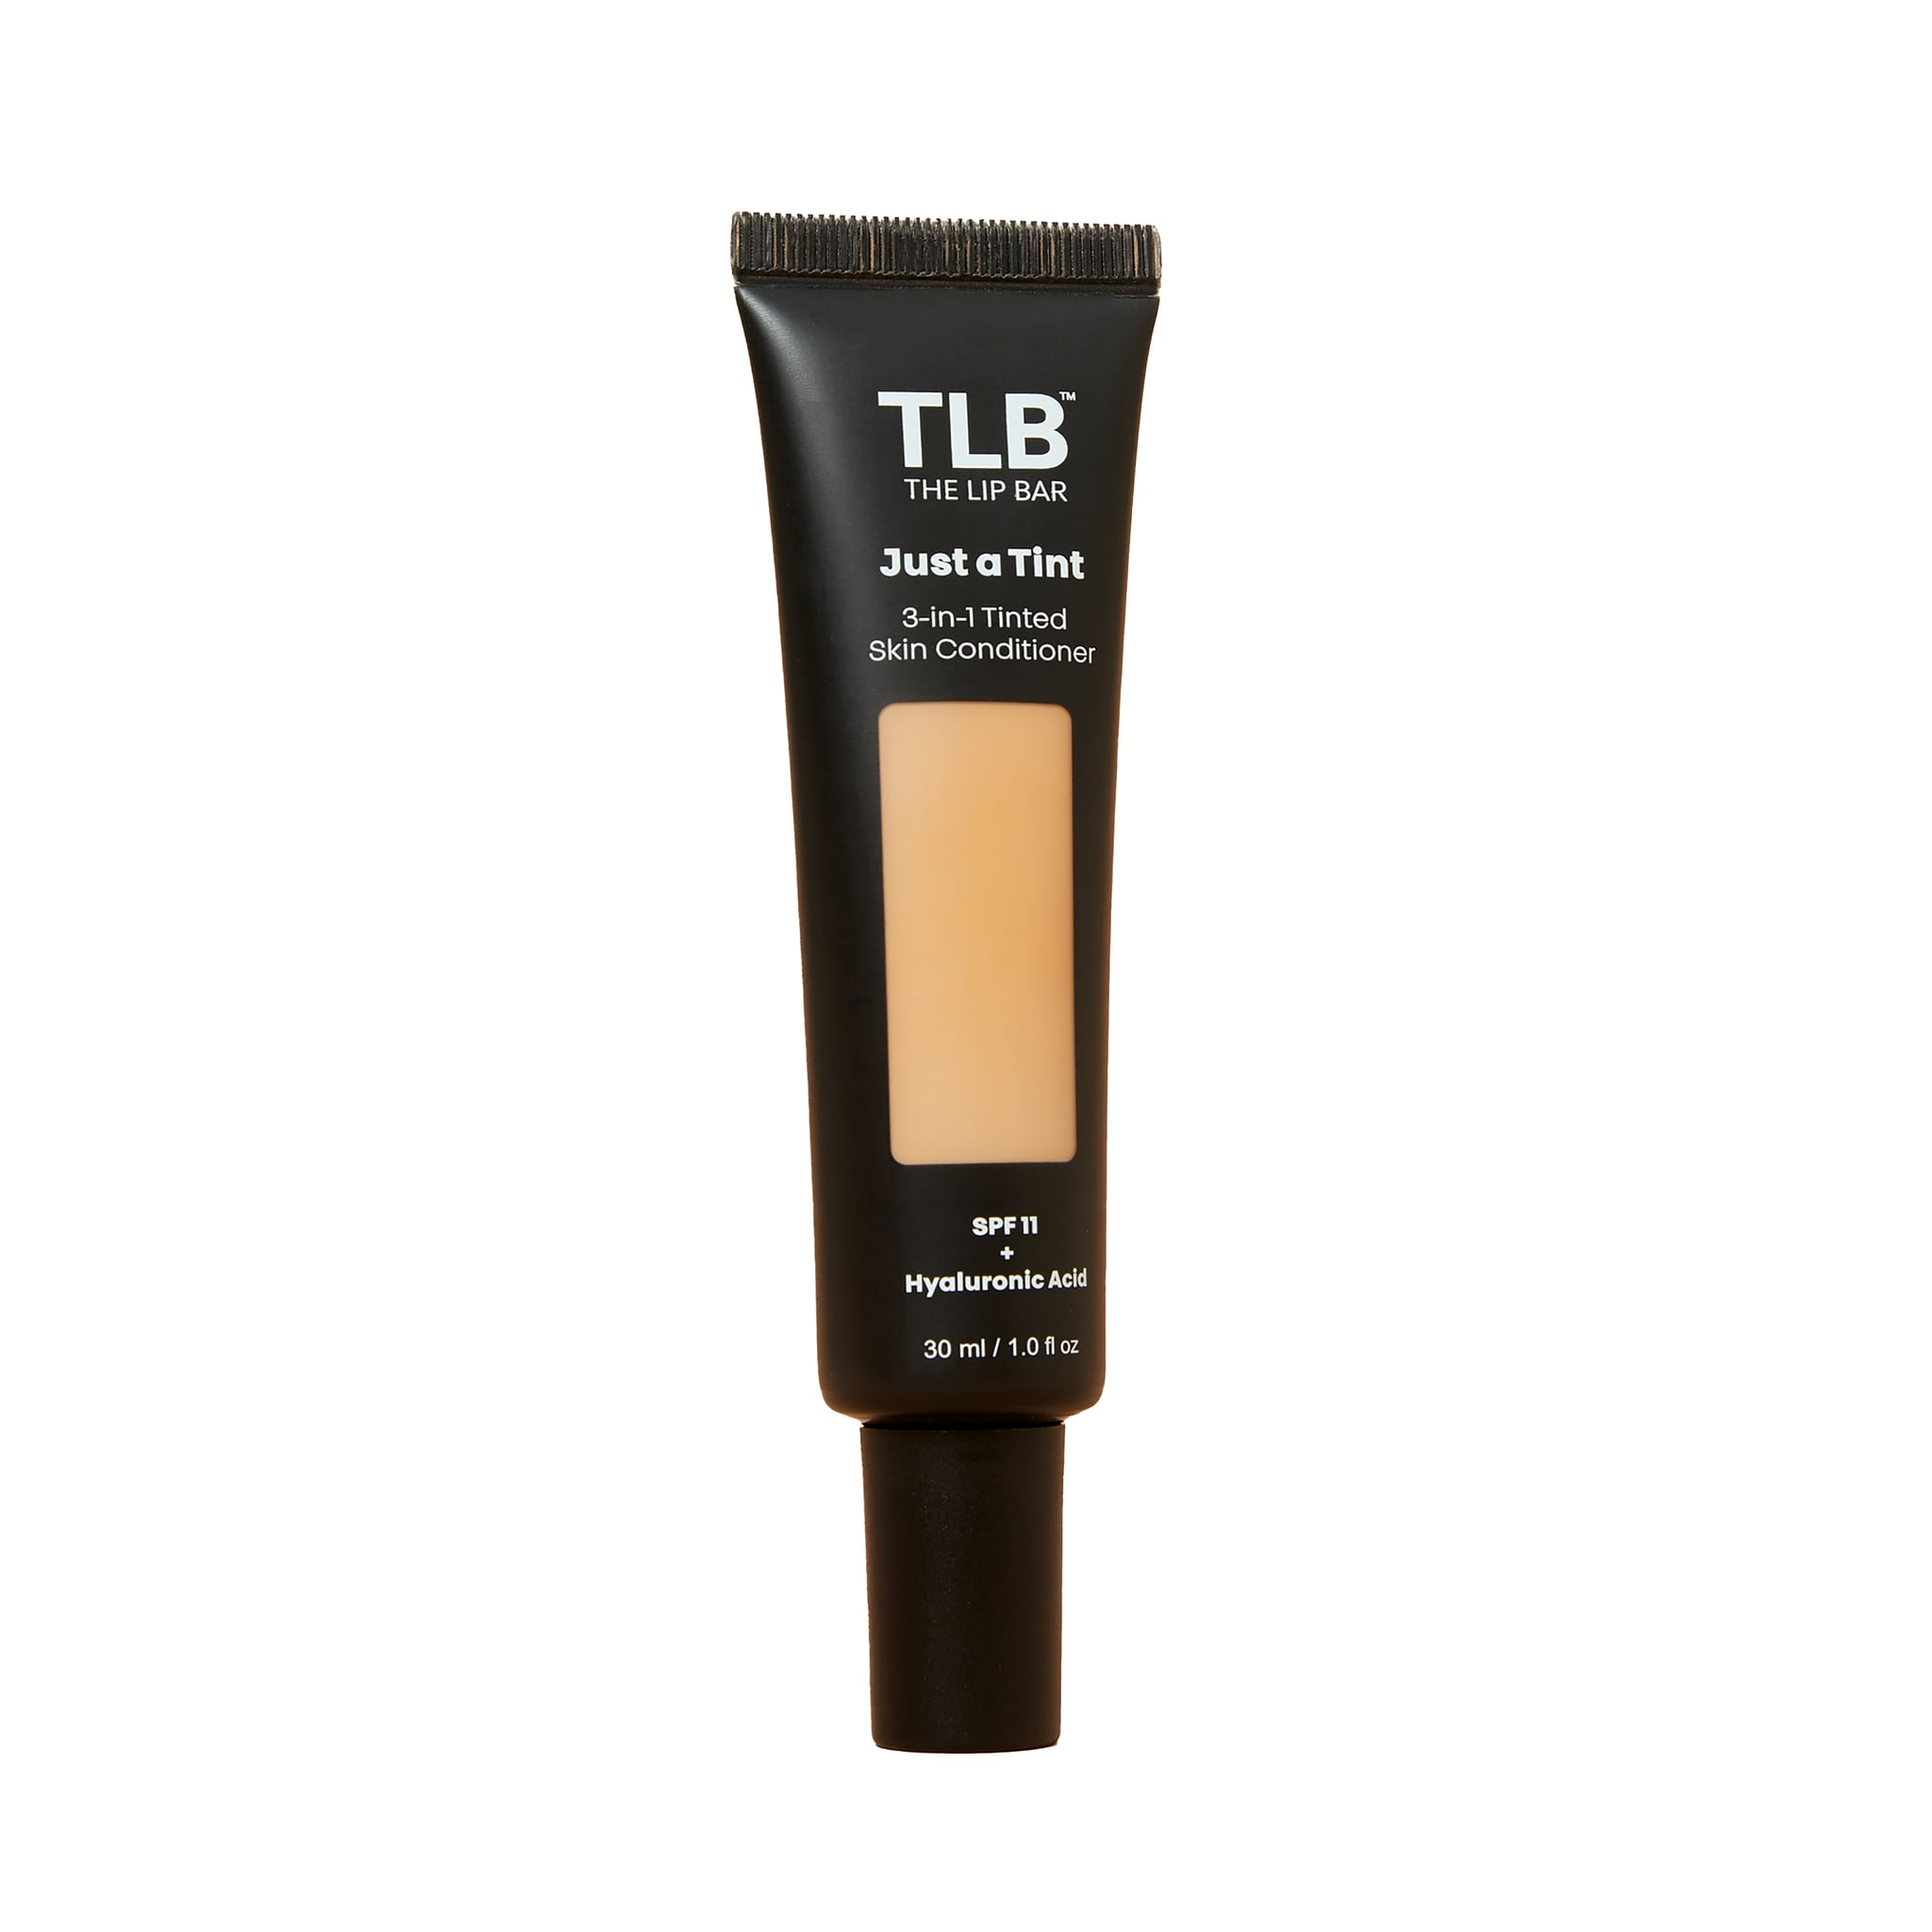 The Lip Bar's 3-in-1 Tinted Skin Conditioner Review 4